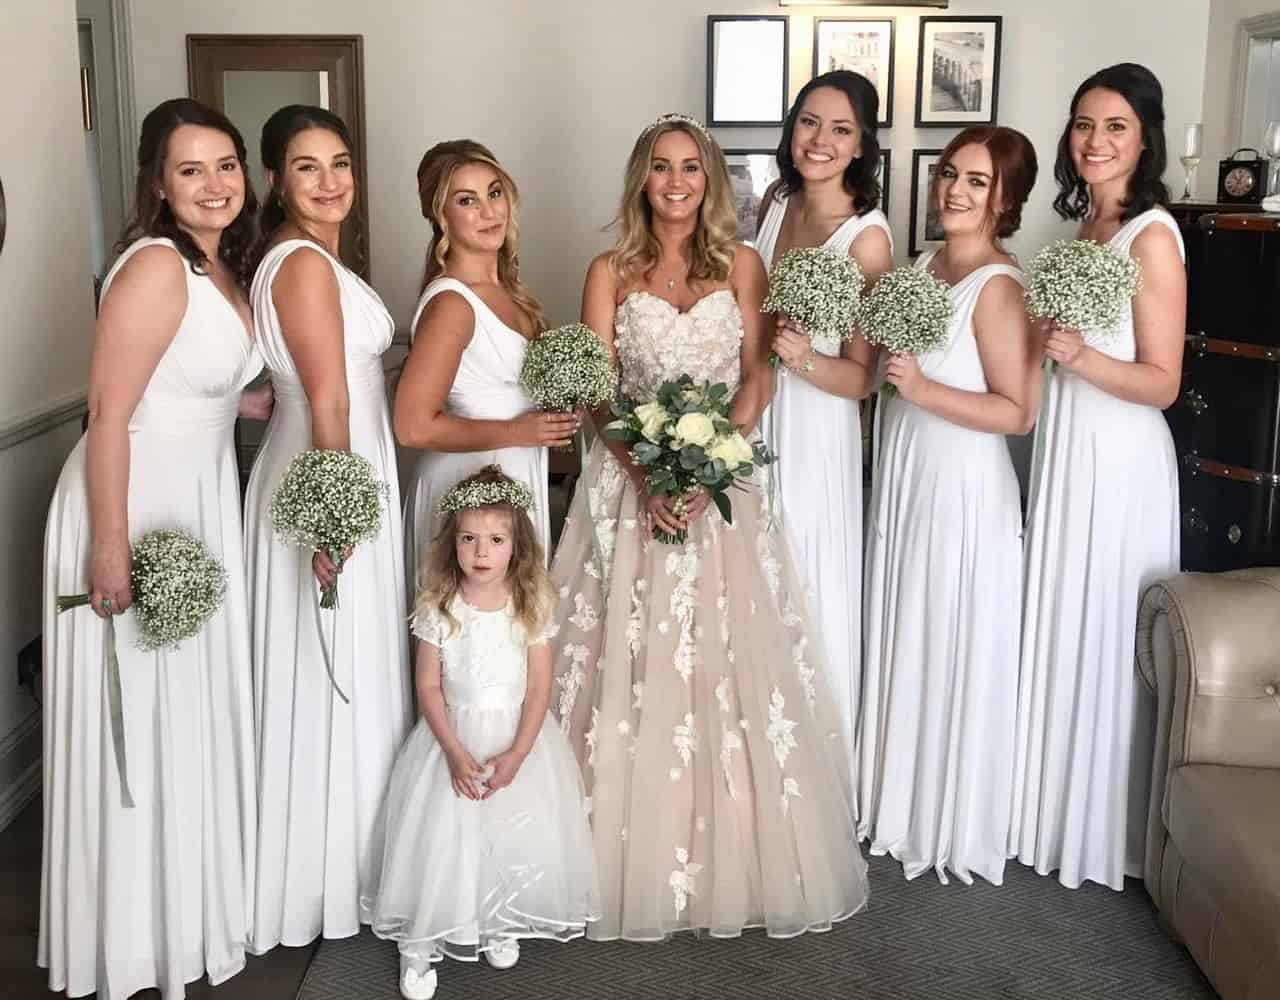 Lots of bridesmaids